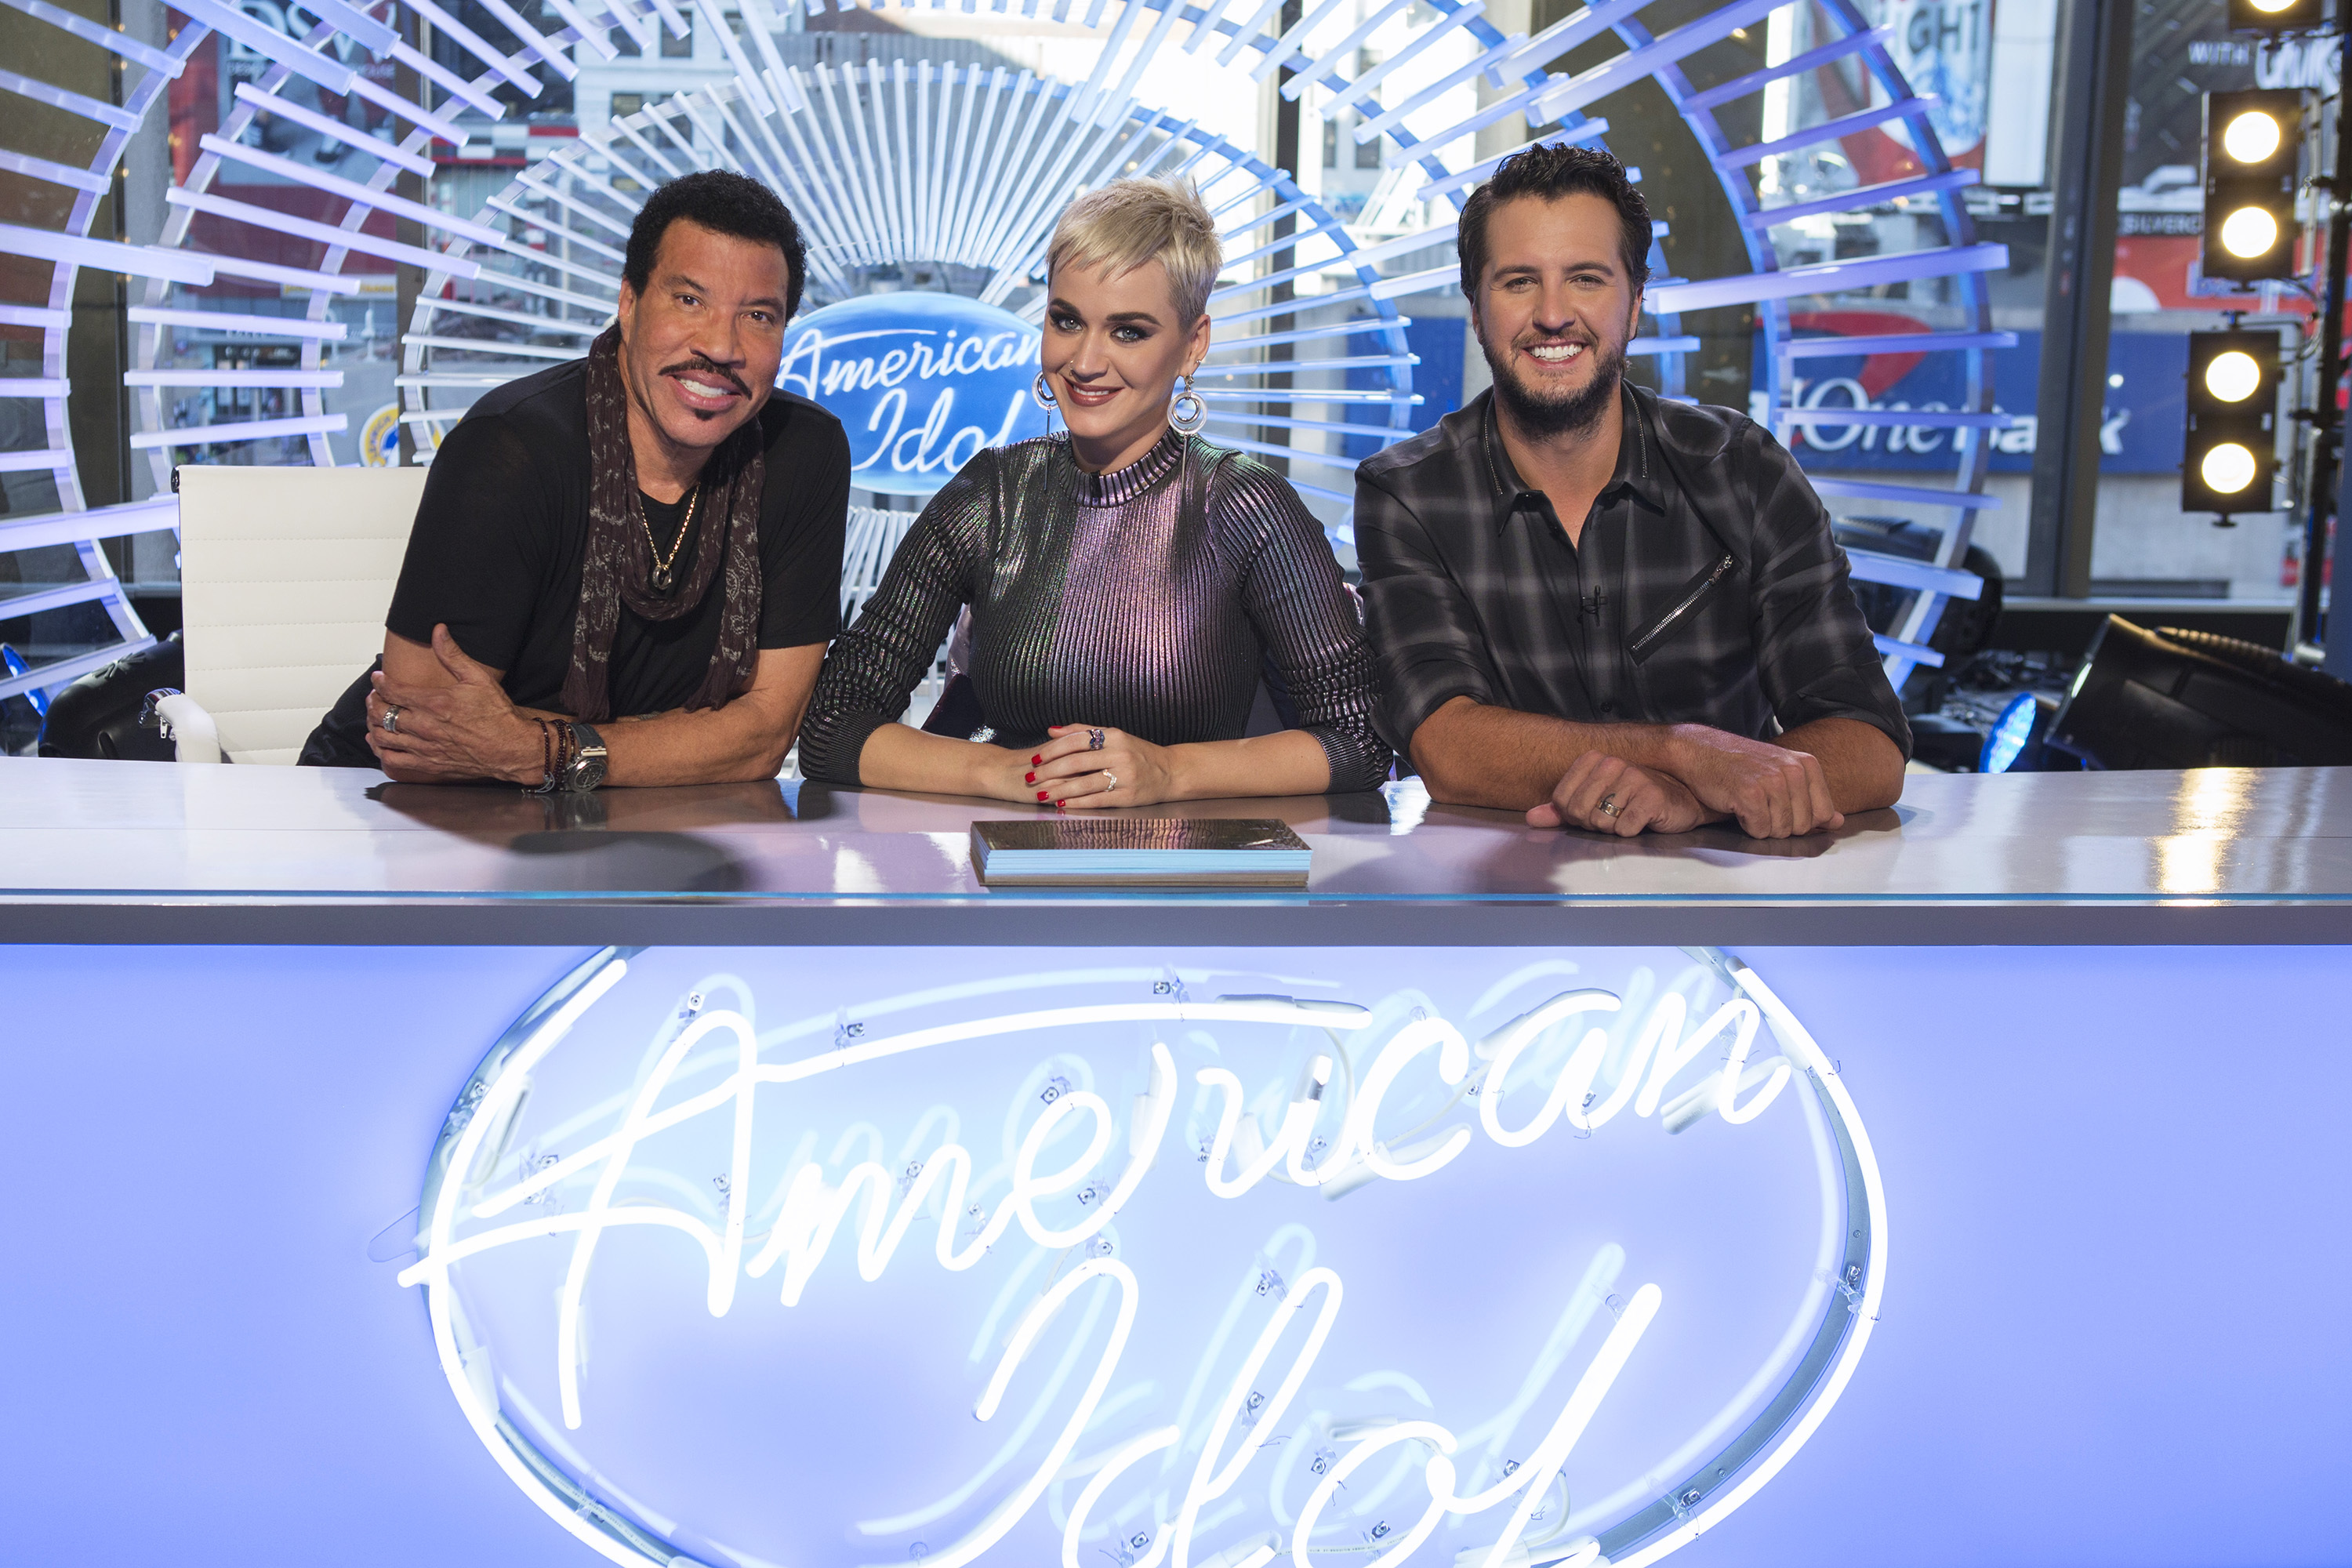 Charitybuzz Meet Katy Perry Lionel Richie And Luke Bryan When You